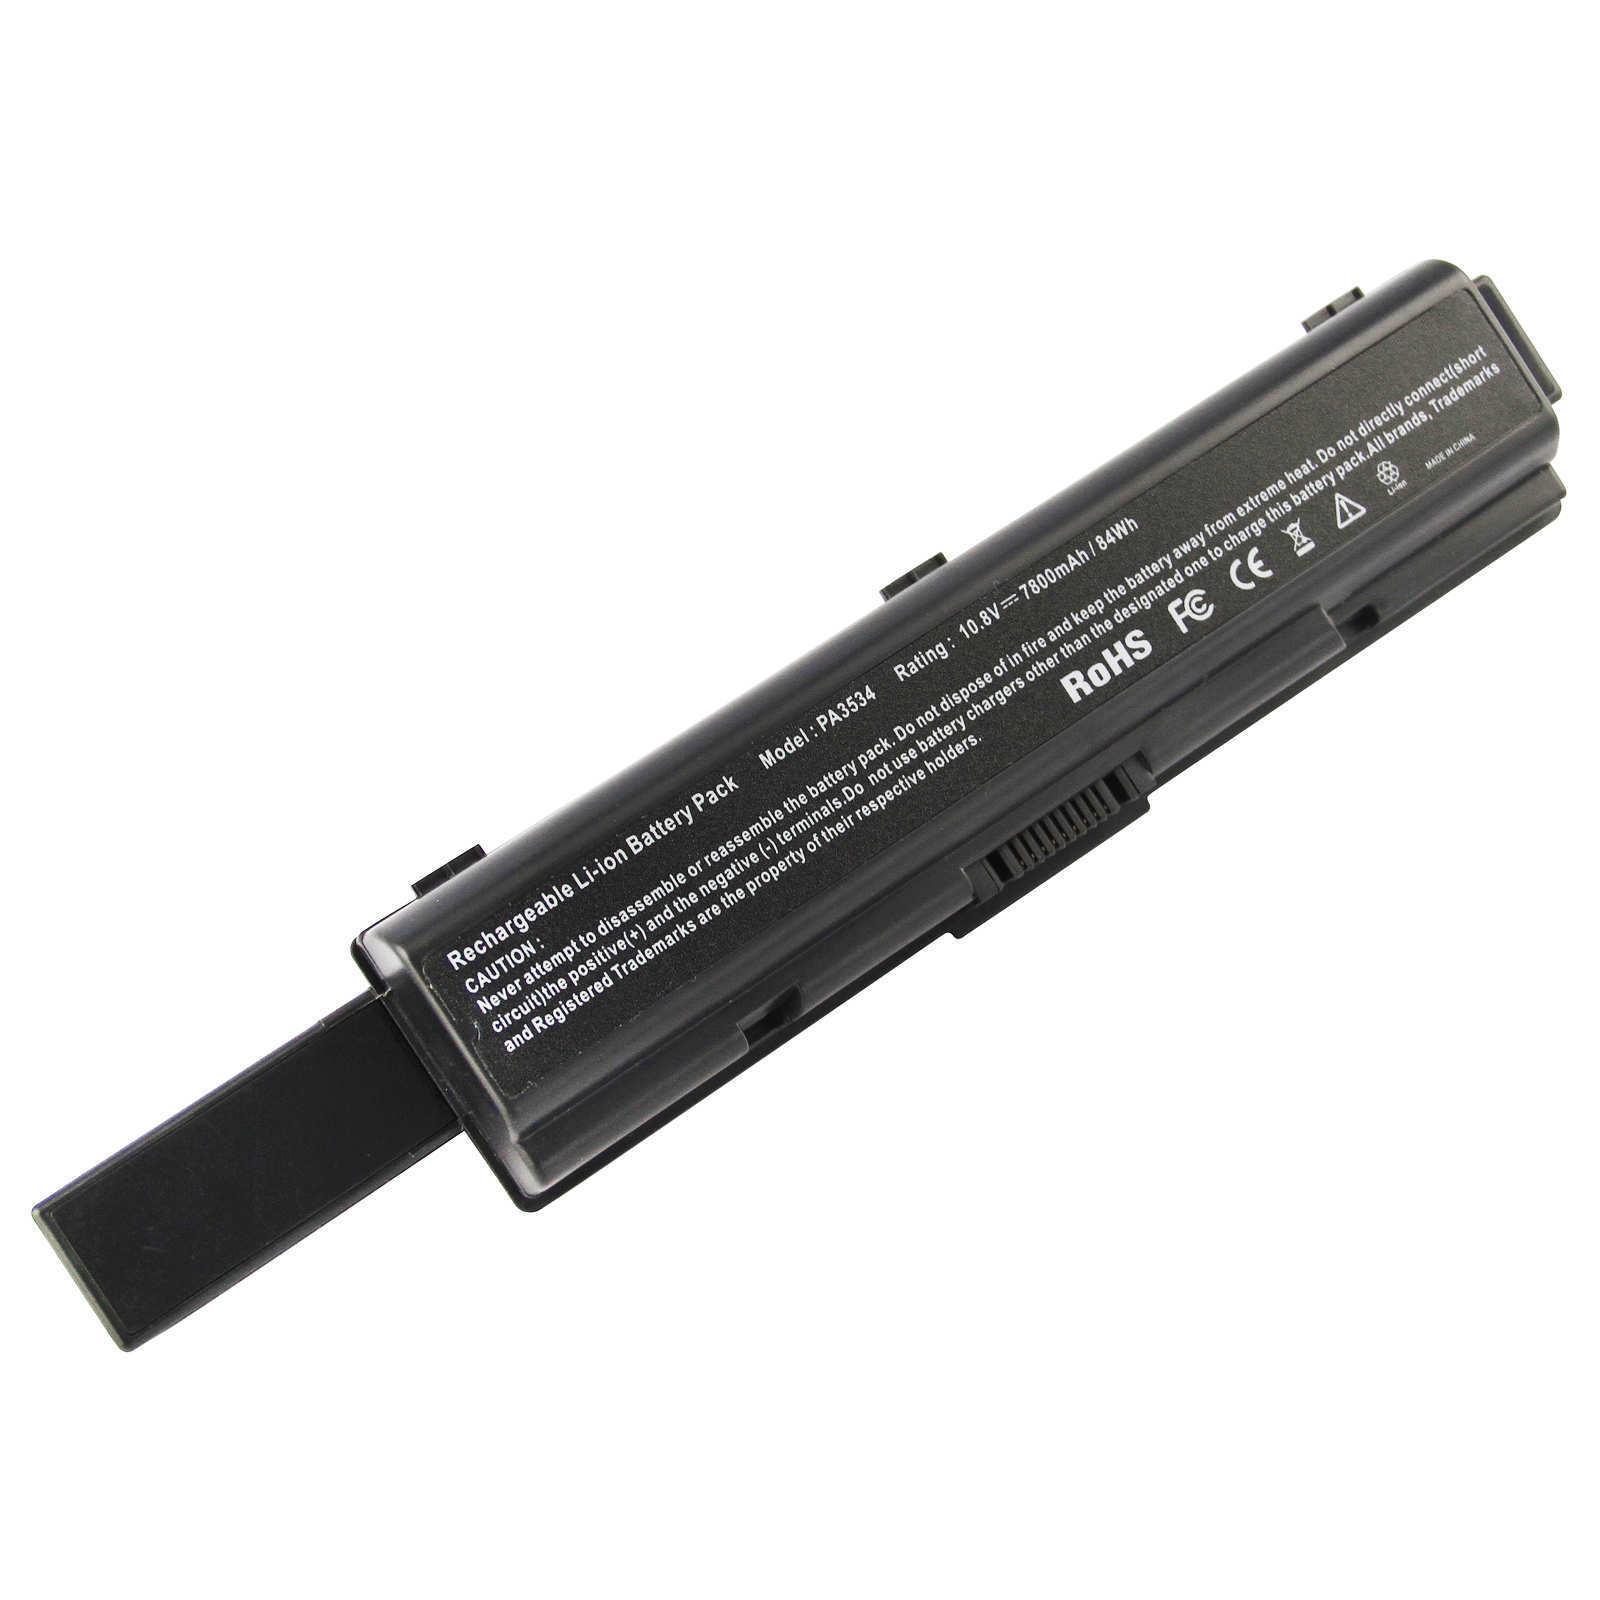 Replacement Toshiba Satellite A505-S6015 Battery